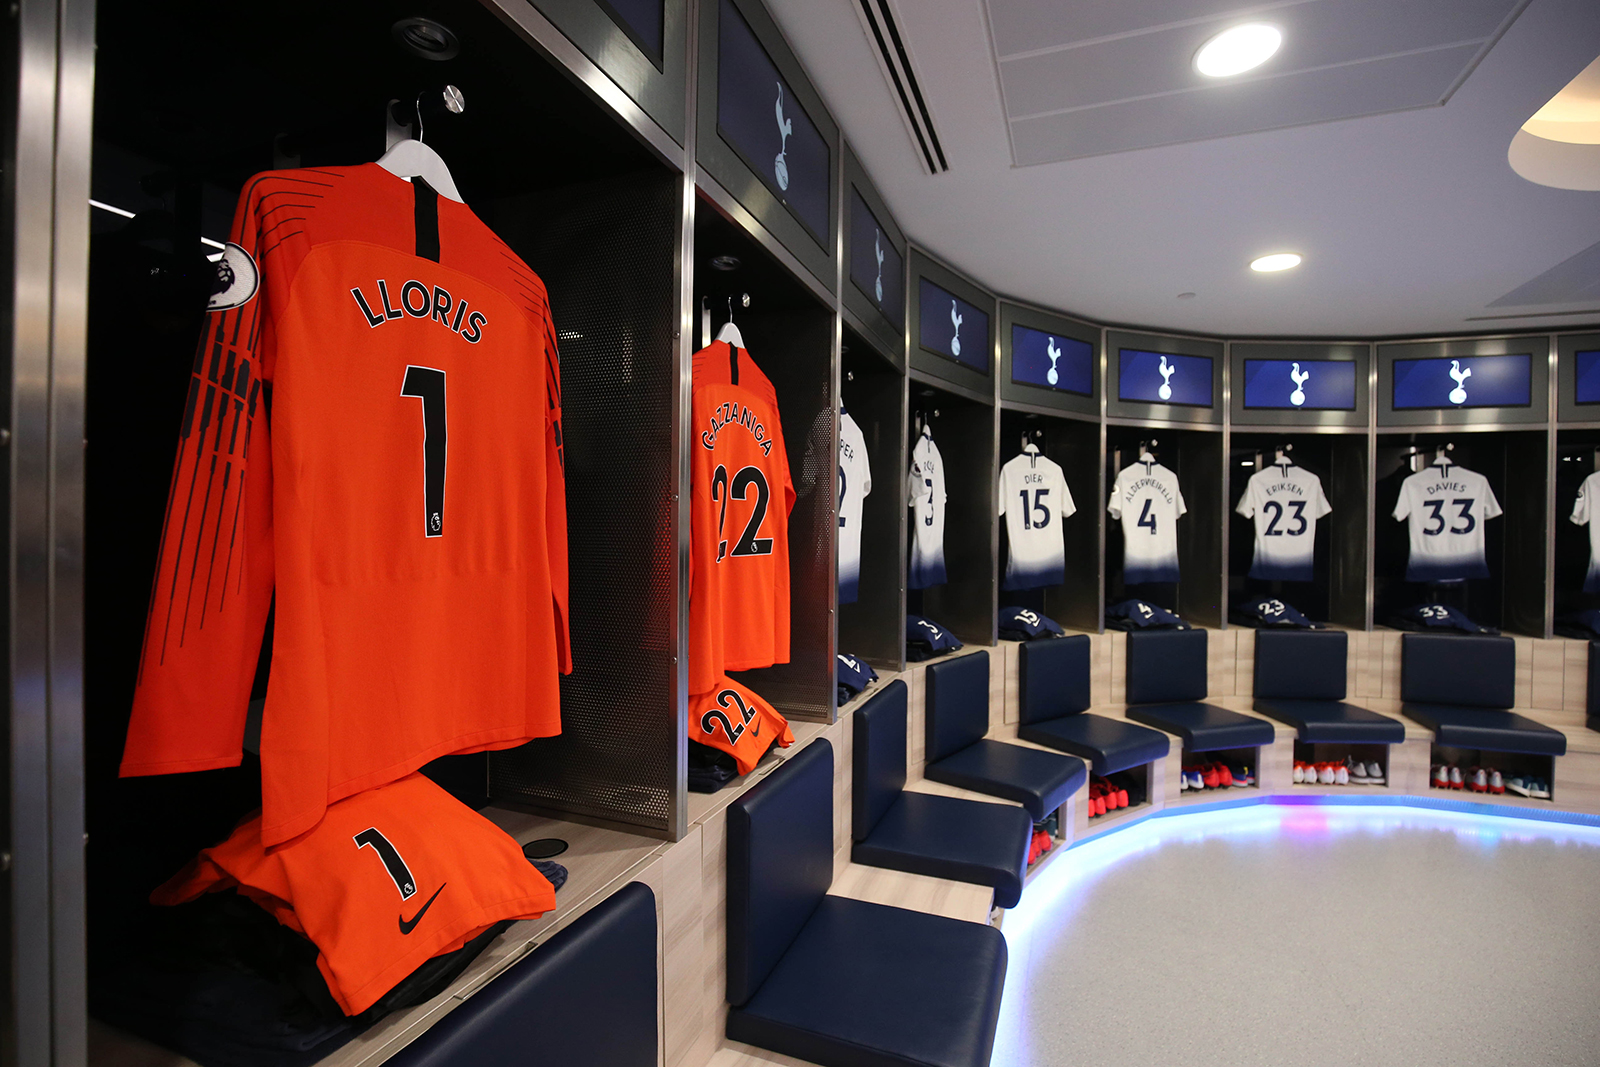 Shirts and kit on display in the Spurs dressing room prior to the Premier League match between Tottenham Hotspur and Everton FC at Tottenham Hotspur Stadium in London, on May 12, 2019.